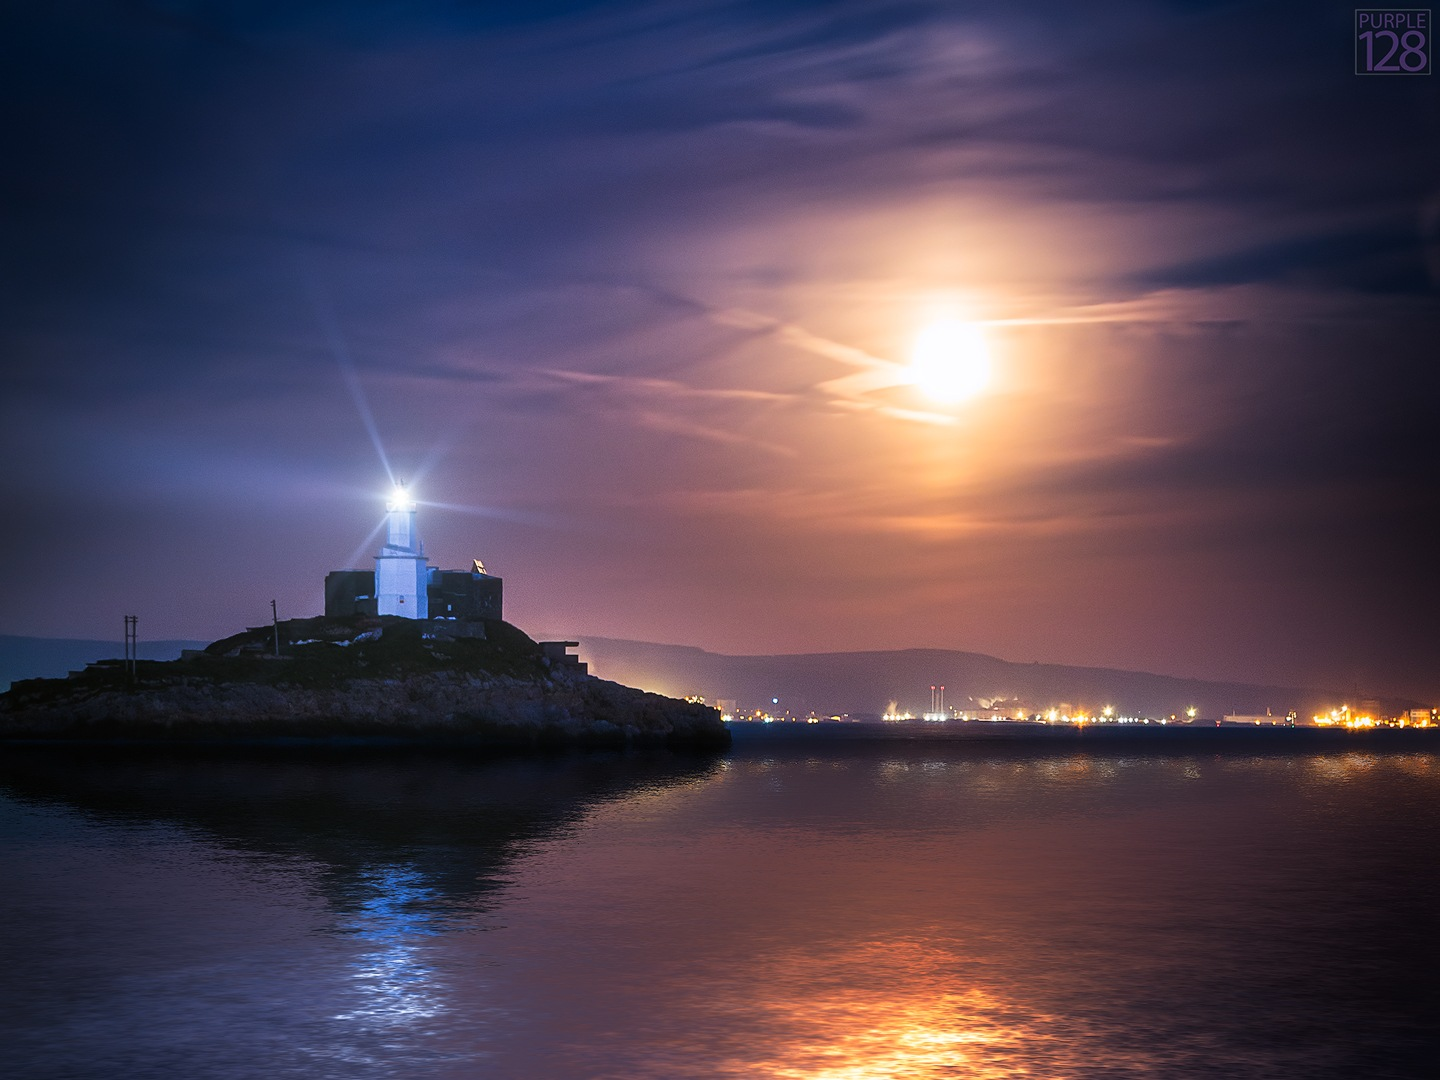 Mumbles, Swansea, South Wales by Purple128